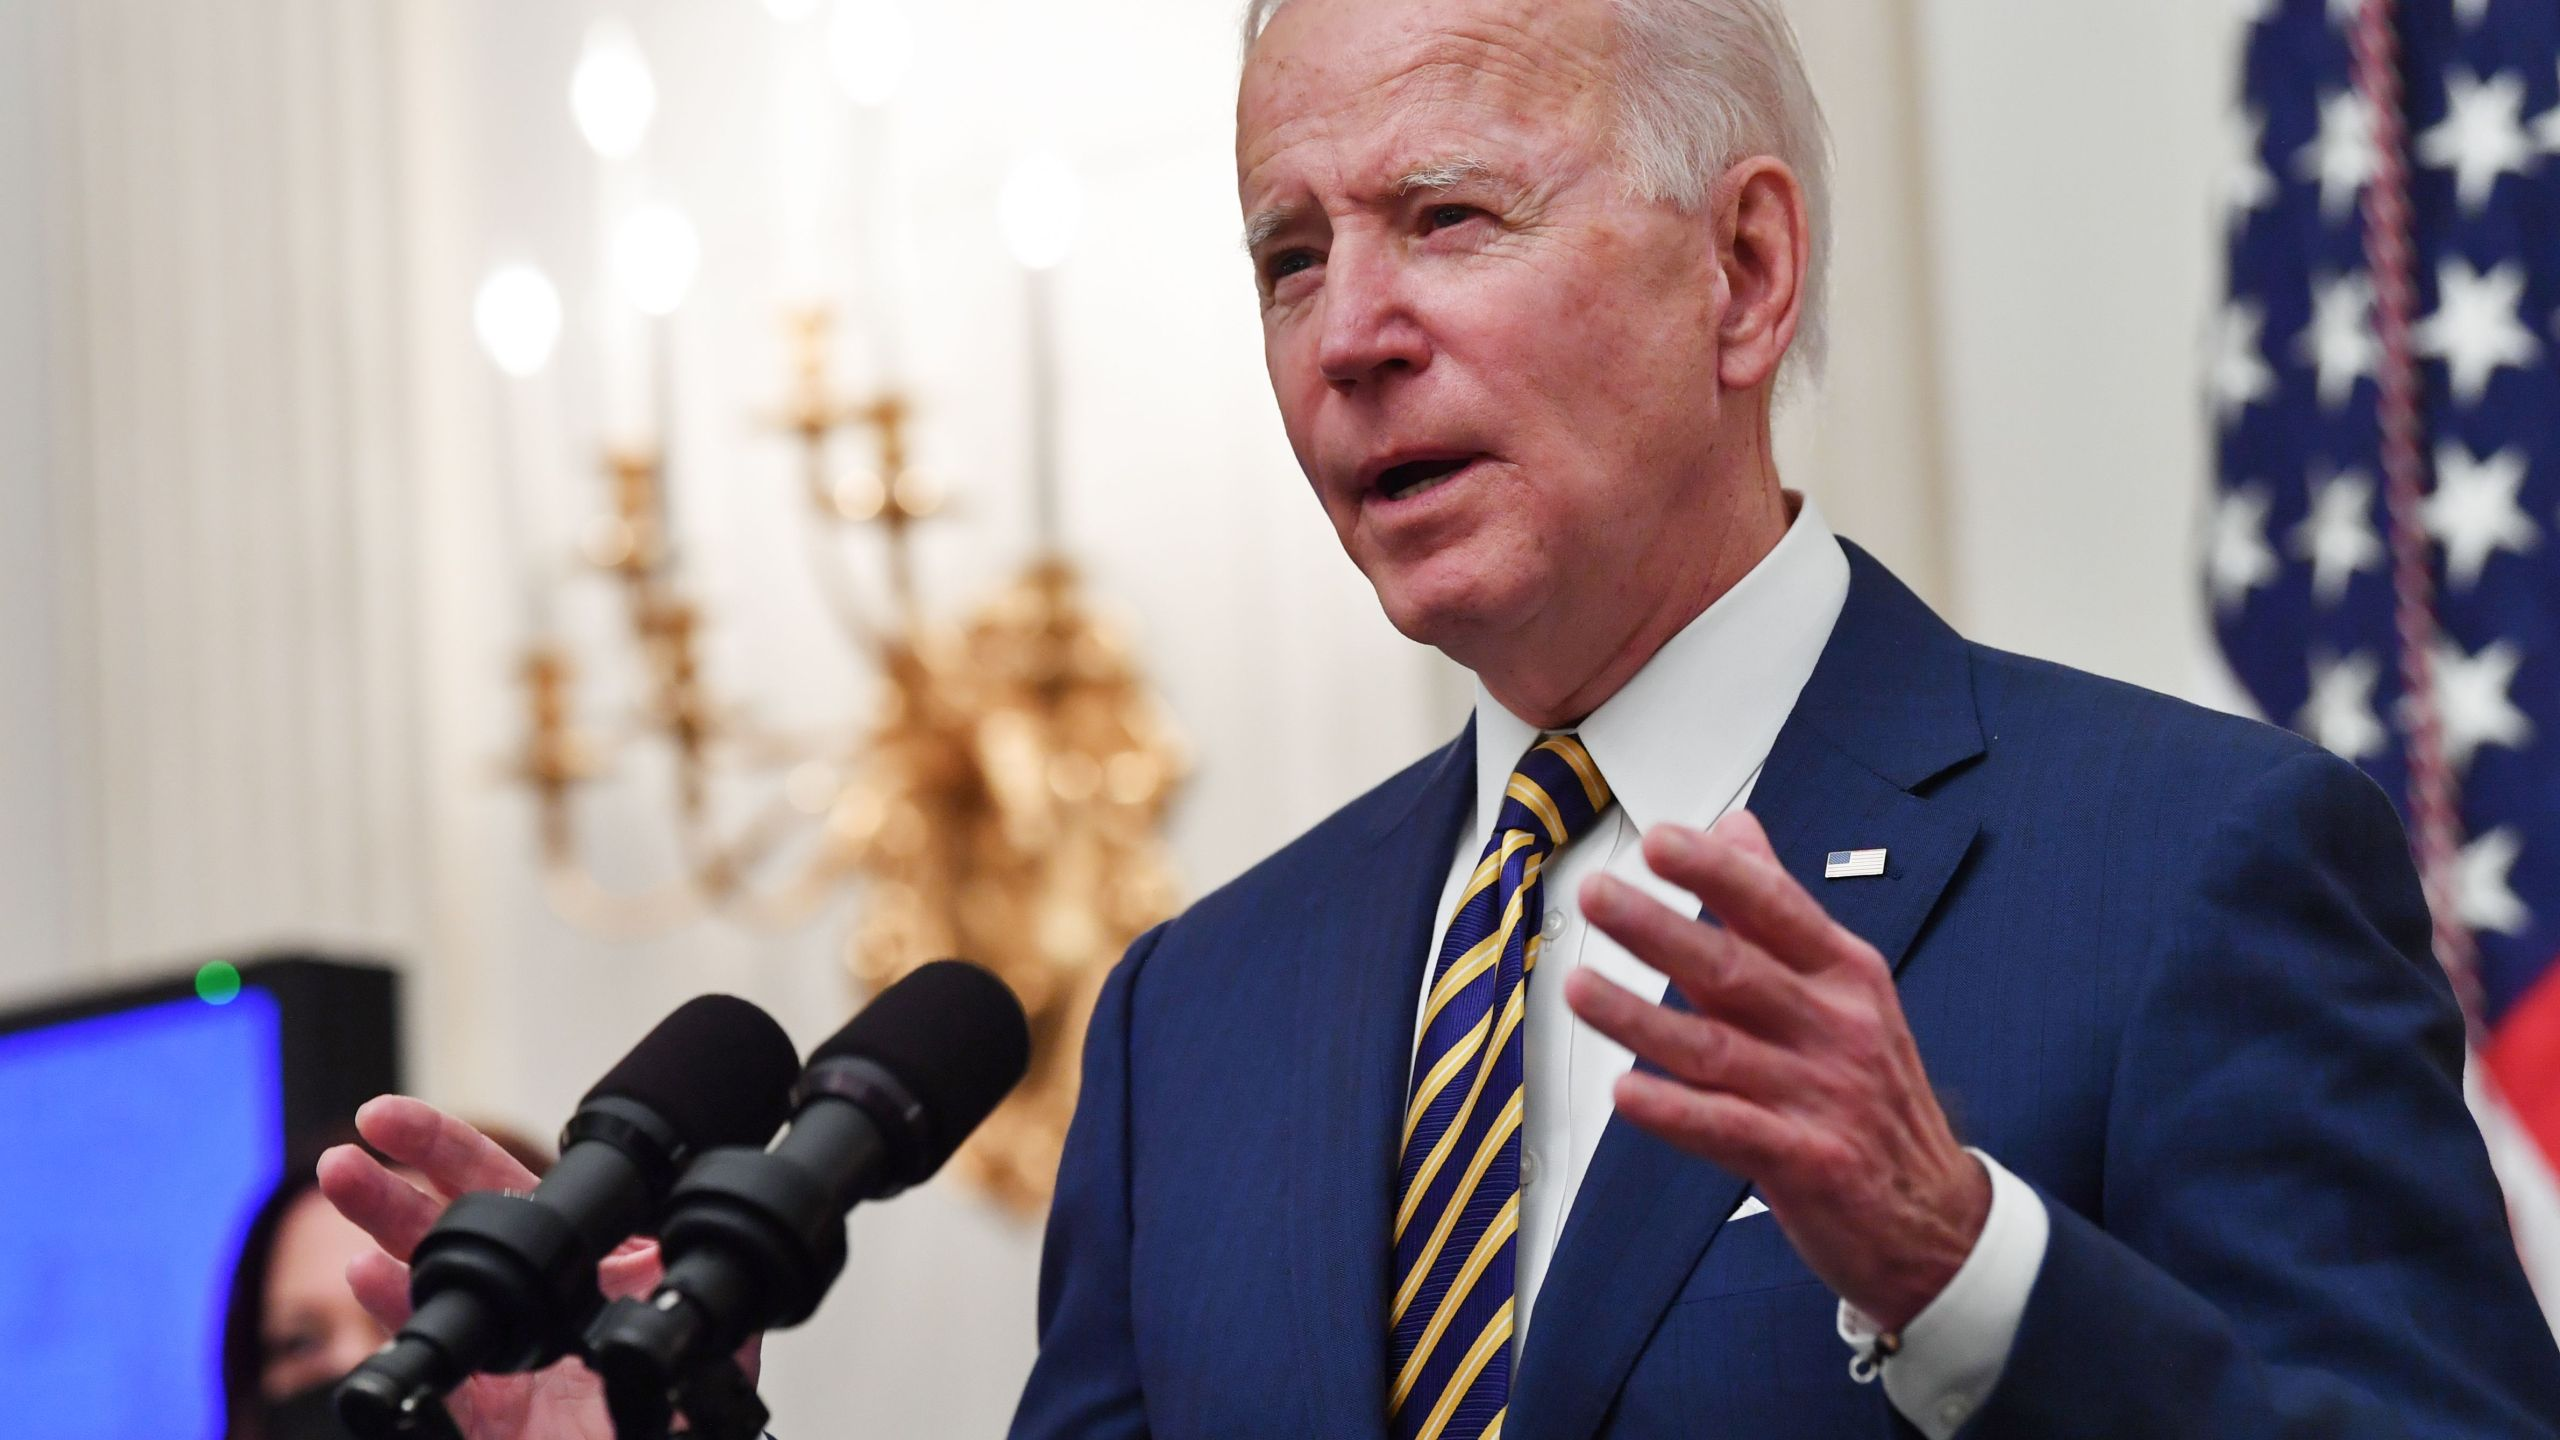 President Joe Biden speaks about the Covid-19 response before signing executive orders for economic relief to Covid-hit families and businesses in the State Dining Room of the White House in Washington, DC, on January 22, 2021. (Nicholas Kamm/AFP via Getty Images)